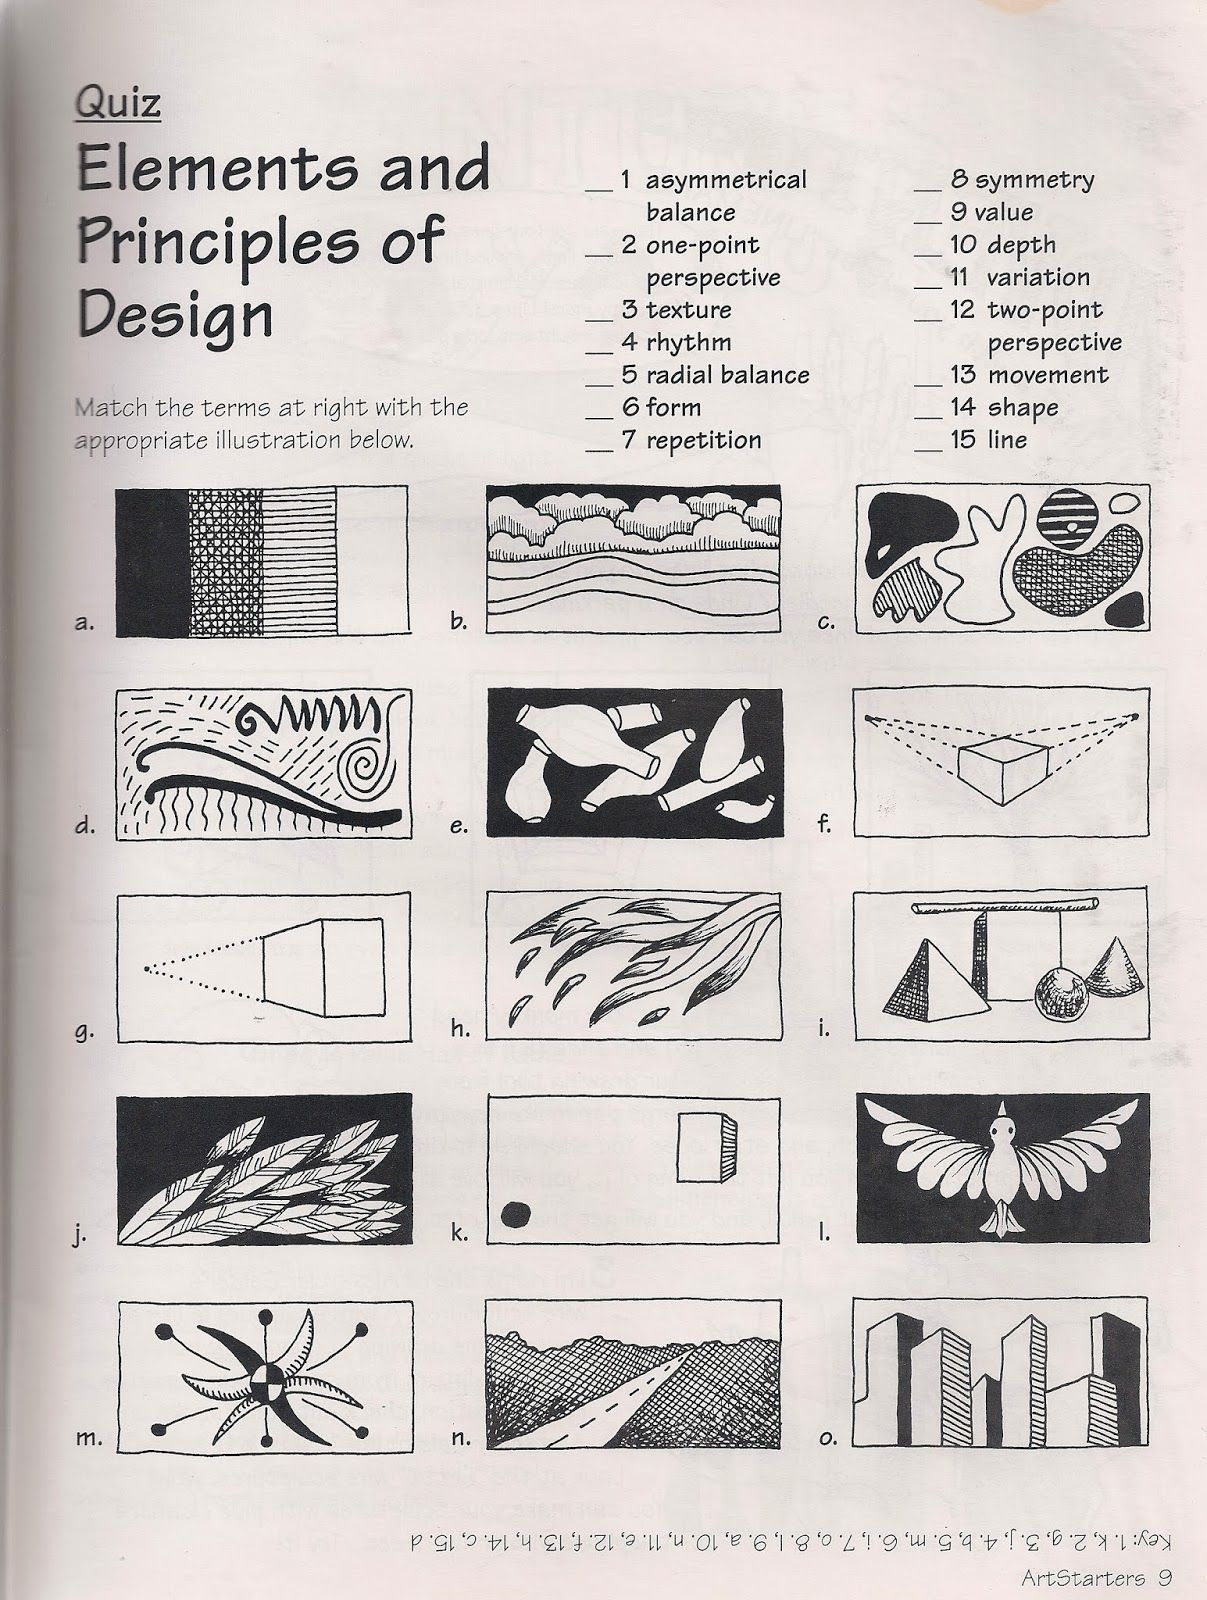 Principles Of Design Art Activities : No corner suns the elements and principles of art